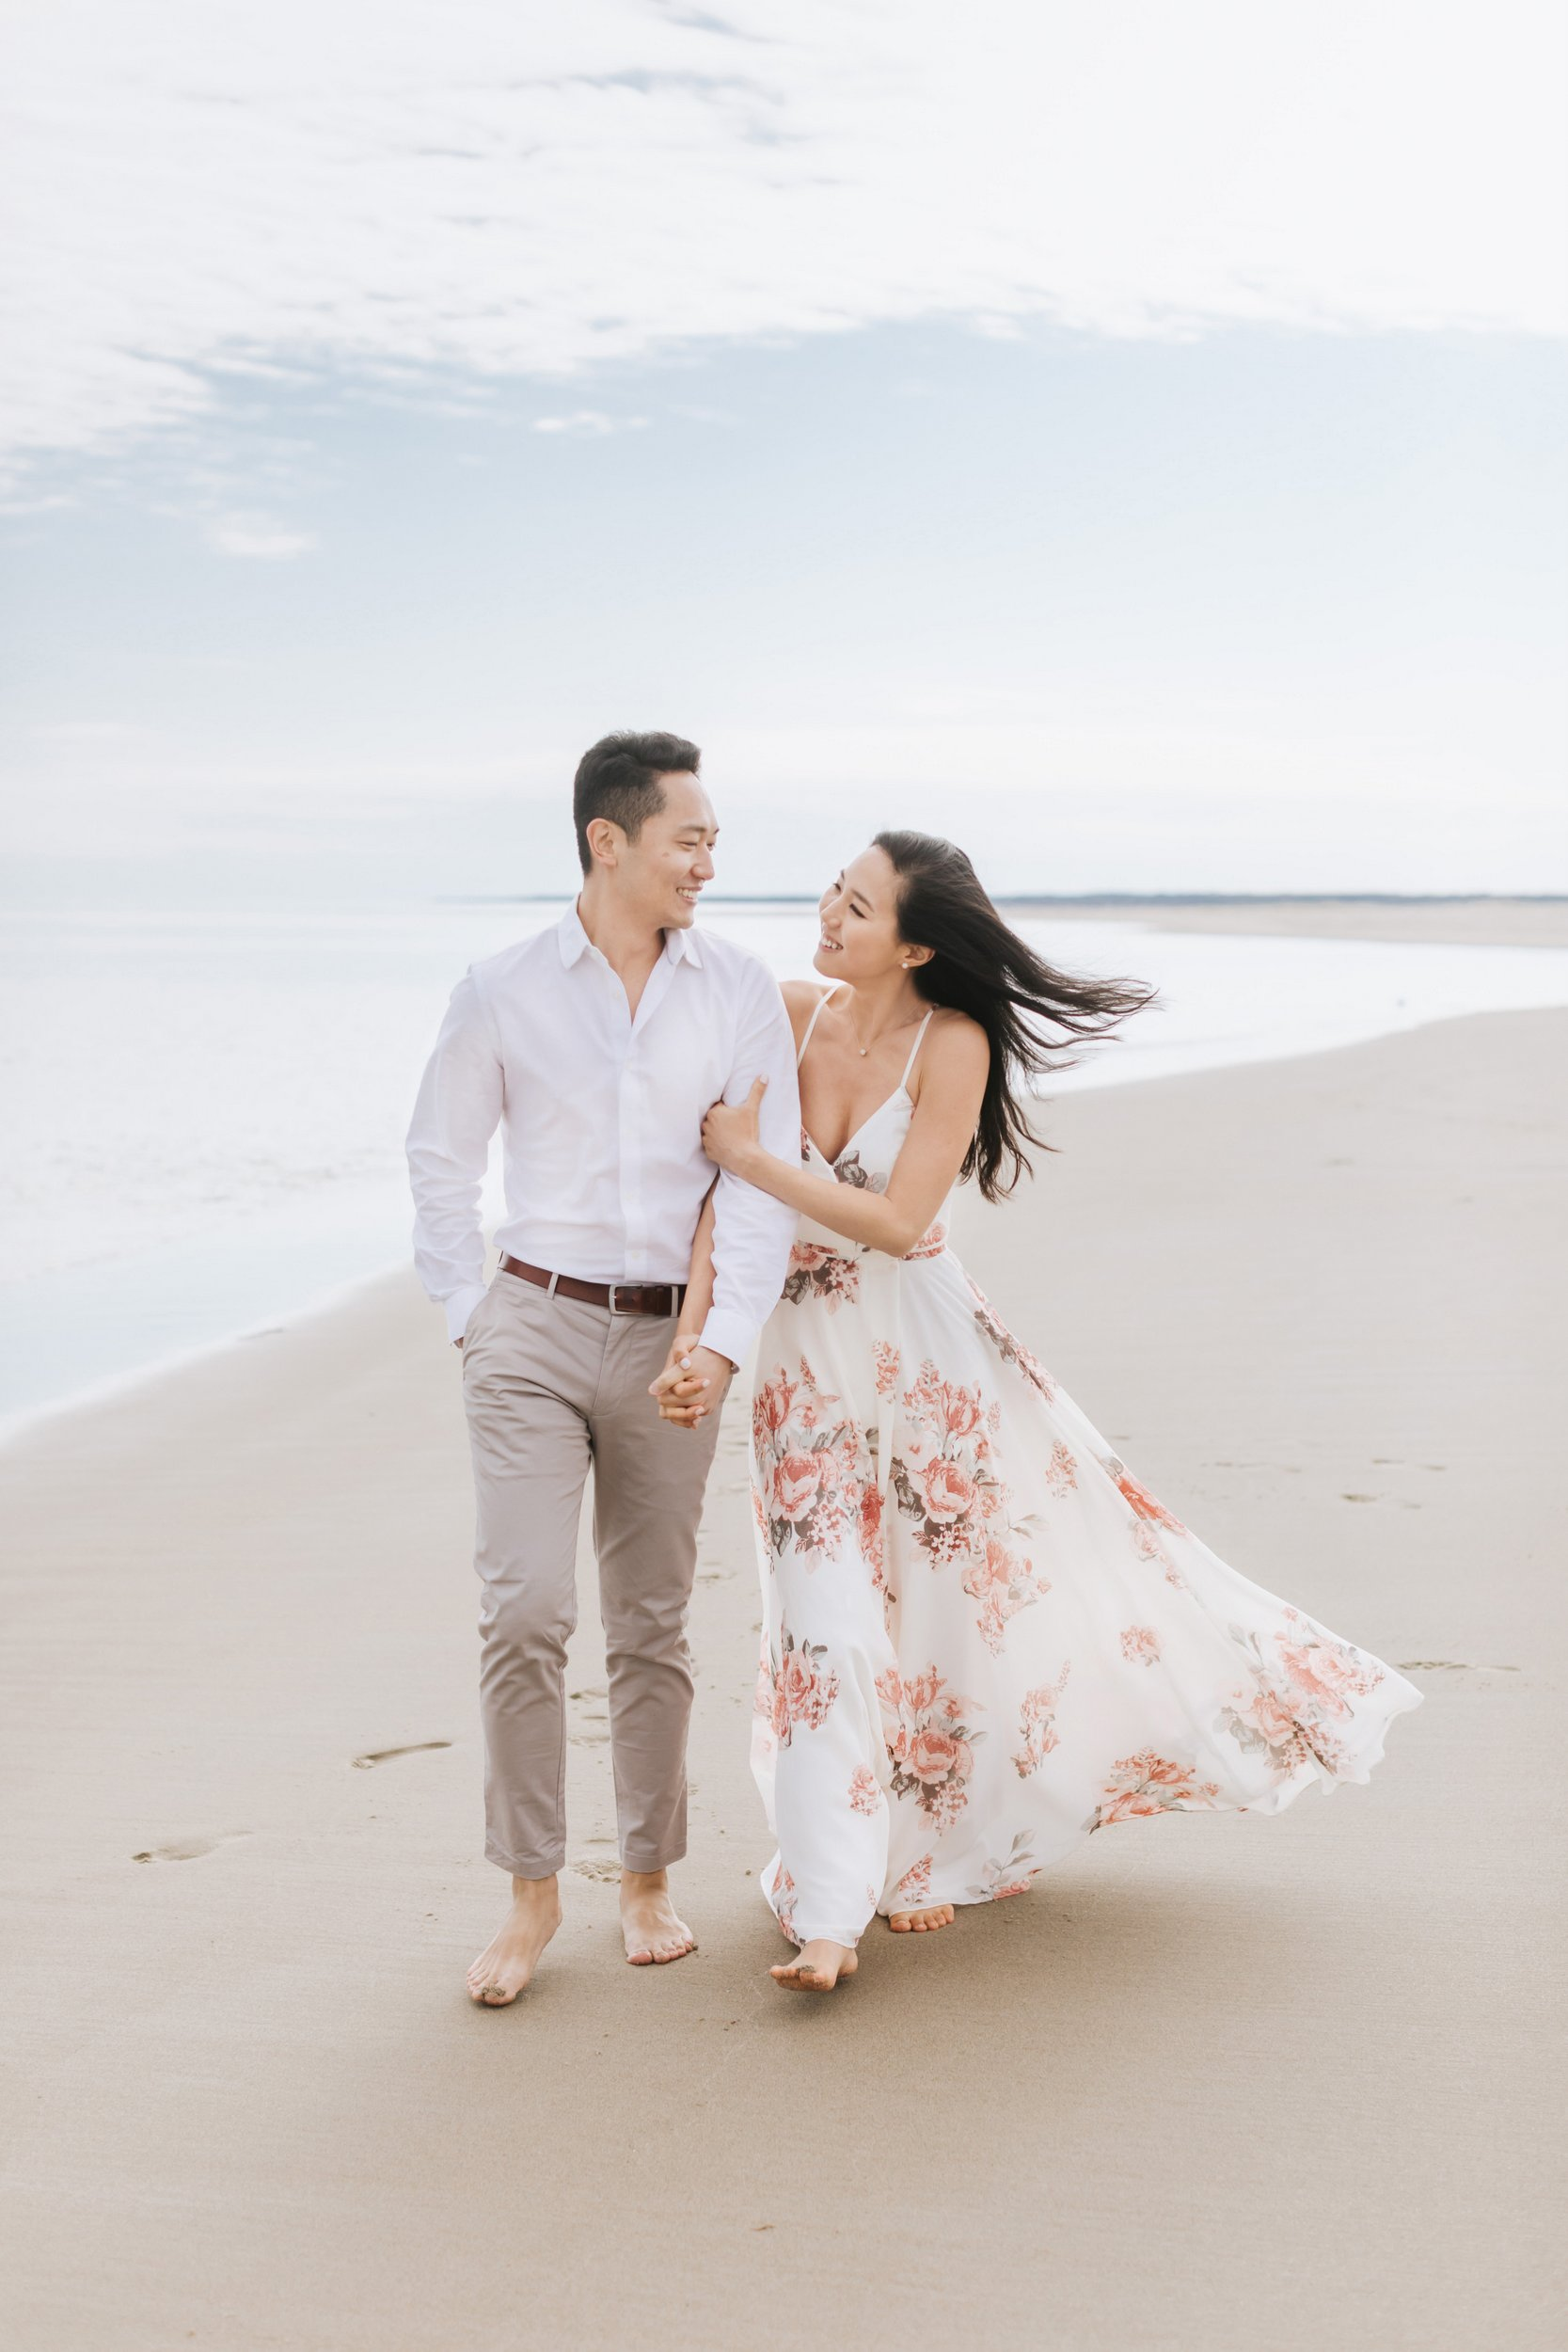 Crane-Beach-Engagement-Wedding-Lena-Mirisola-5.JPG